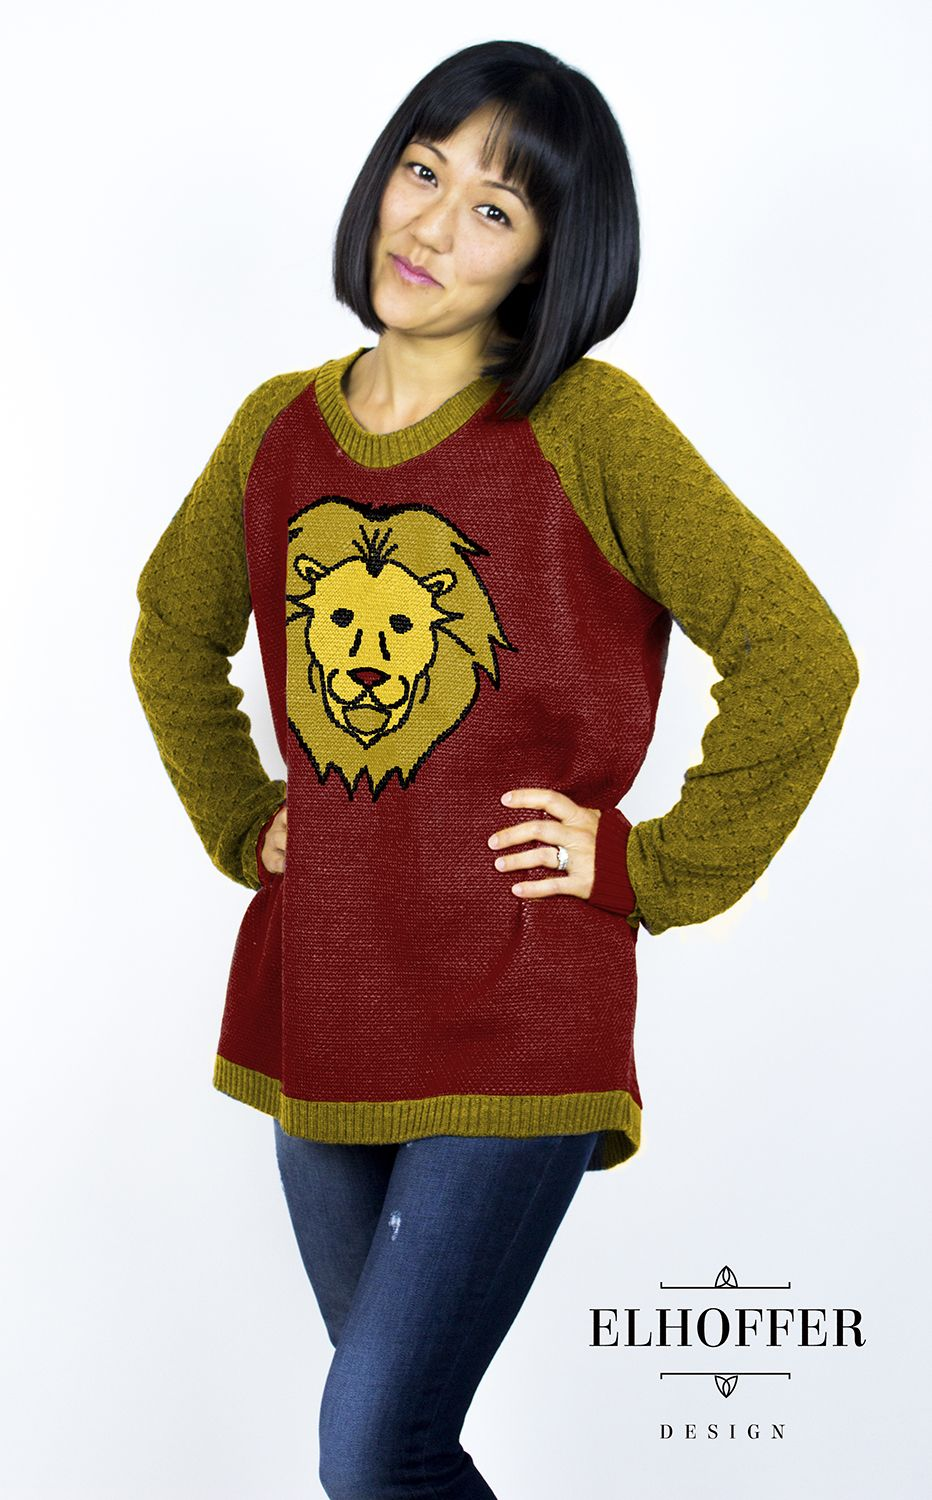 Accio Adorable Harry Potter Hogwarts House Sweaters Wish List